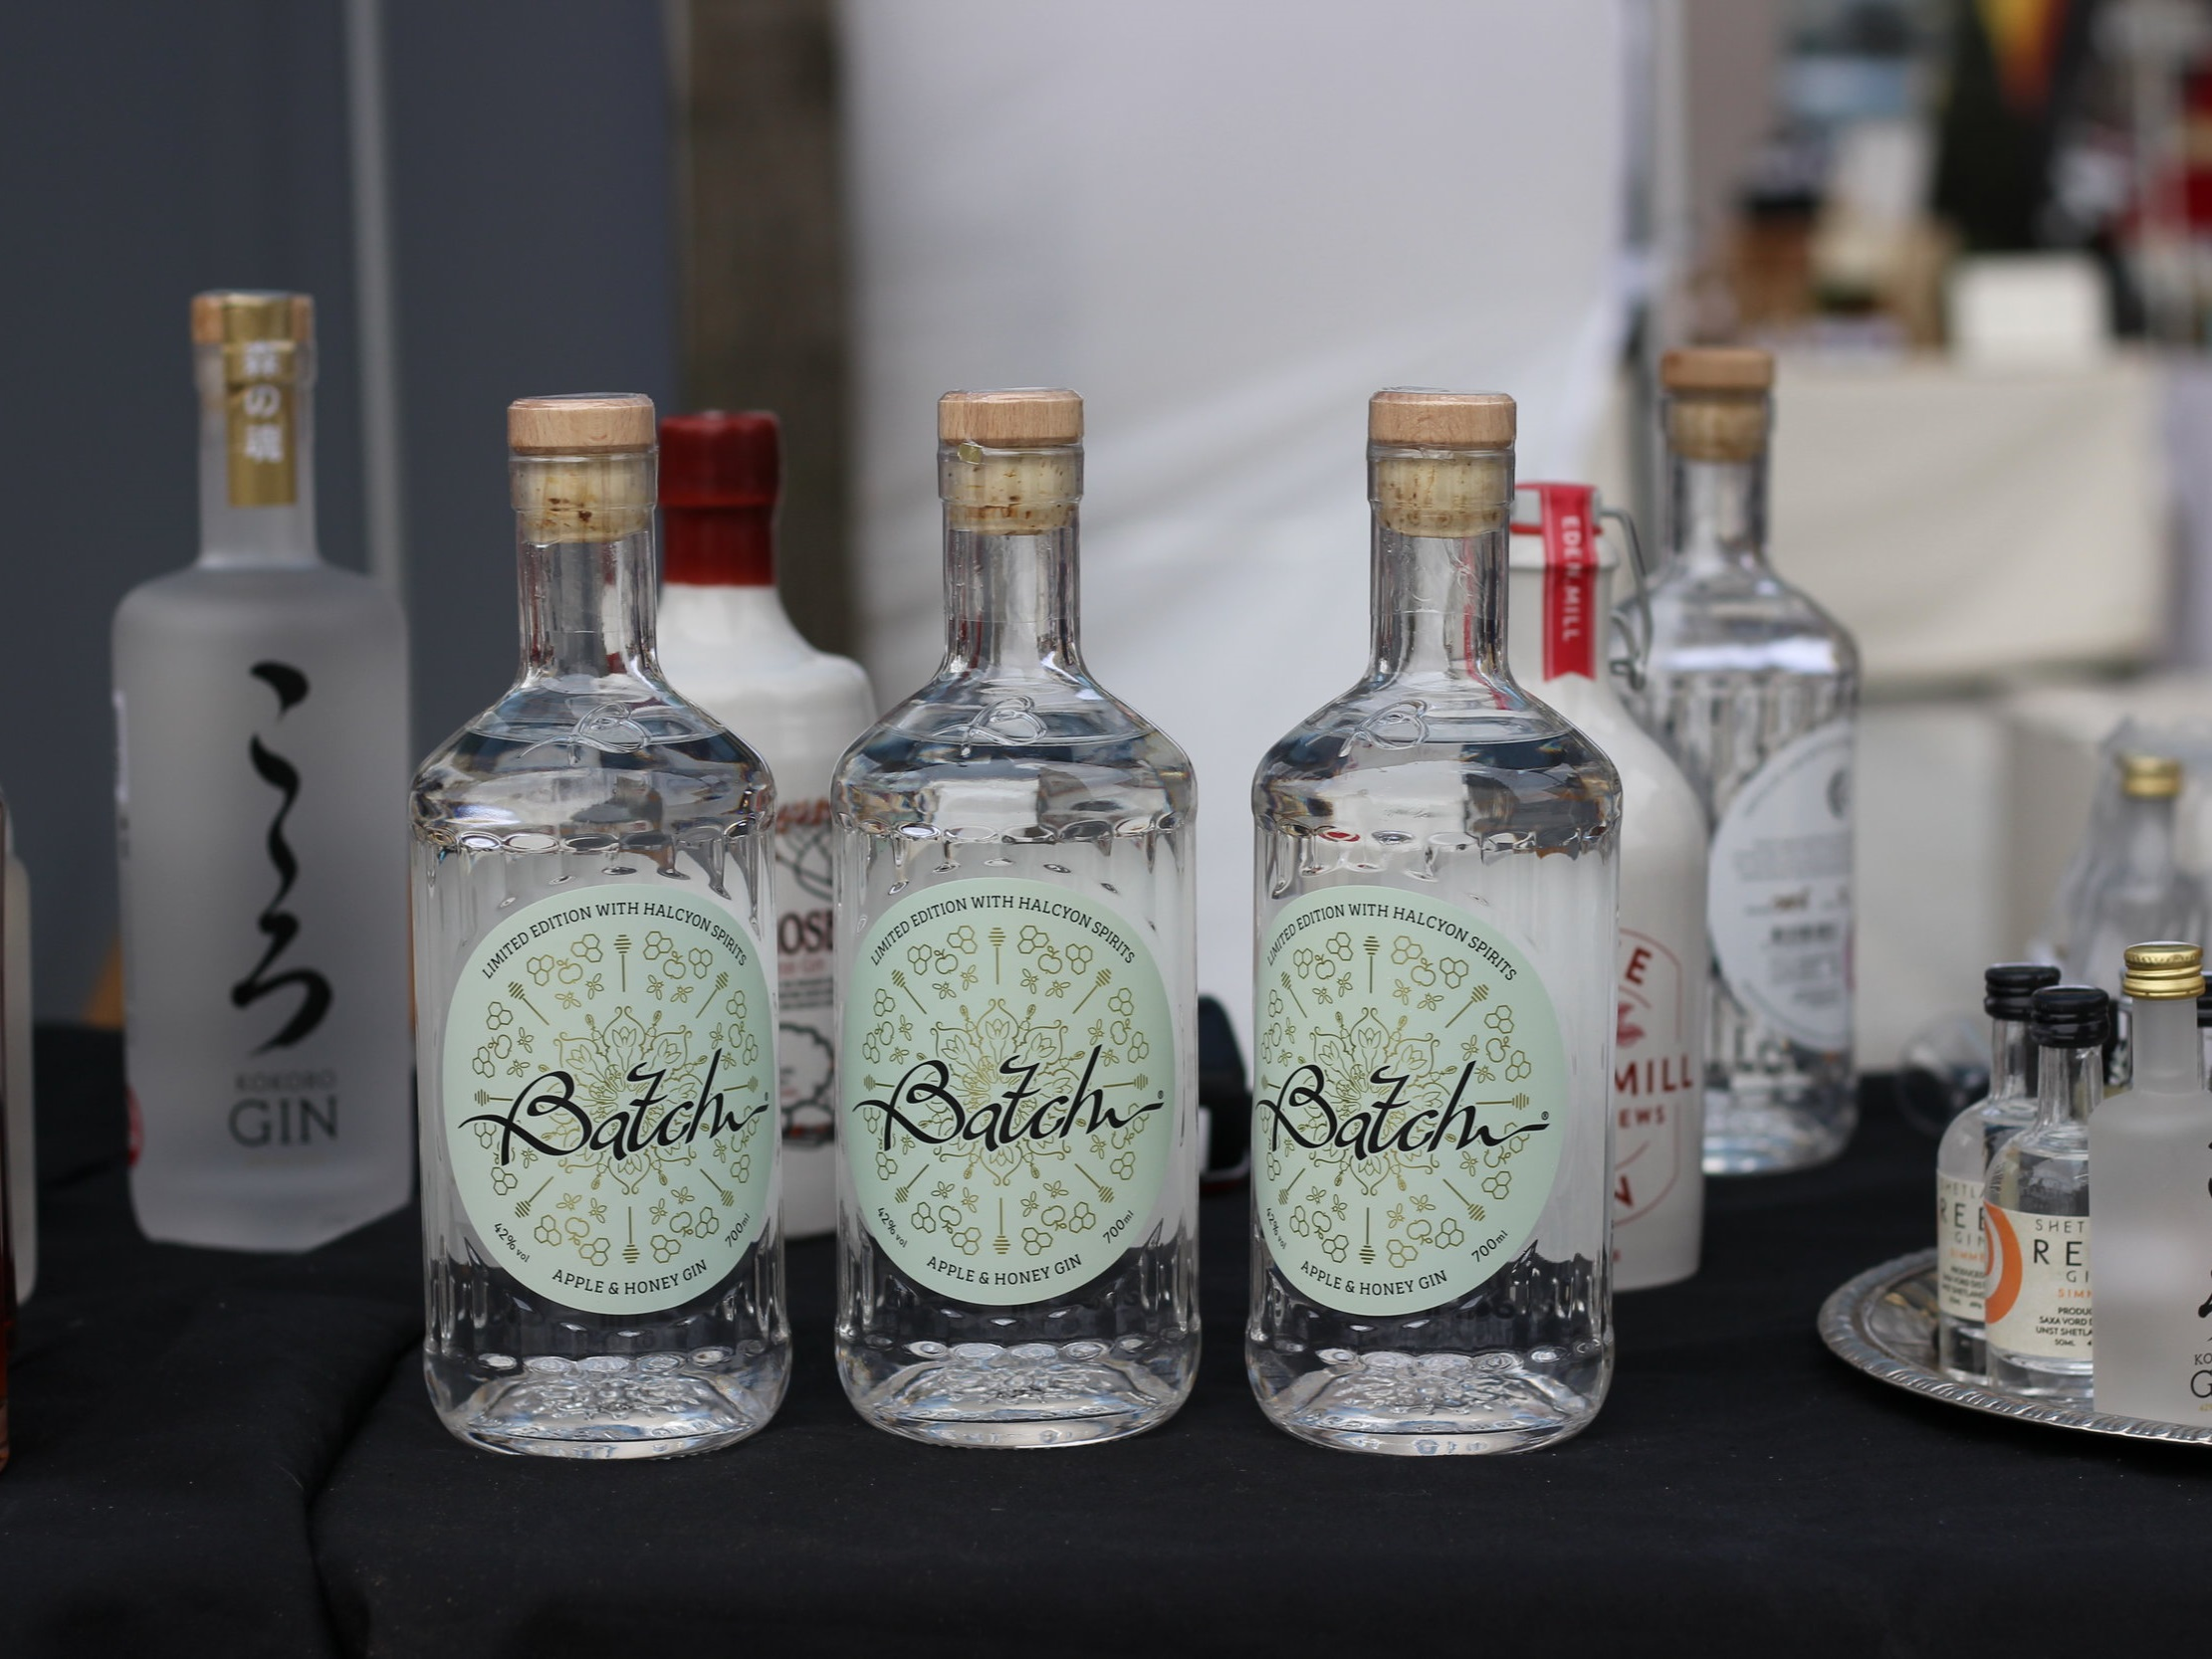 - Artisan Drinks22nd DecemberAward-winning, small batch gins sourced from craft distillers. You've got to get your tipples from somewhere, right?!